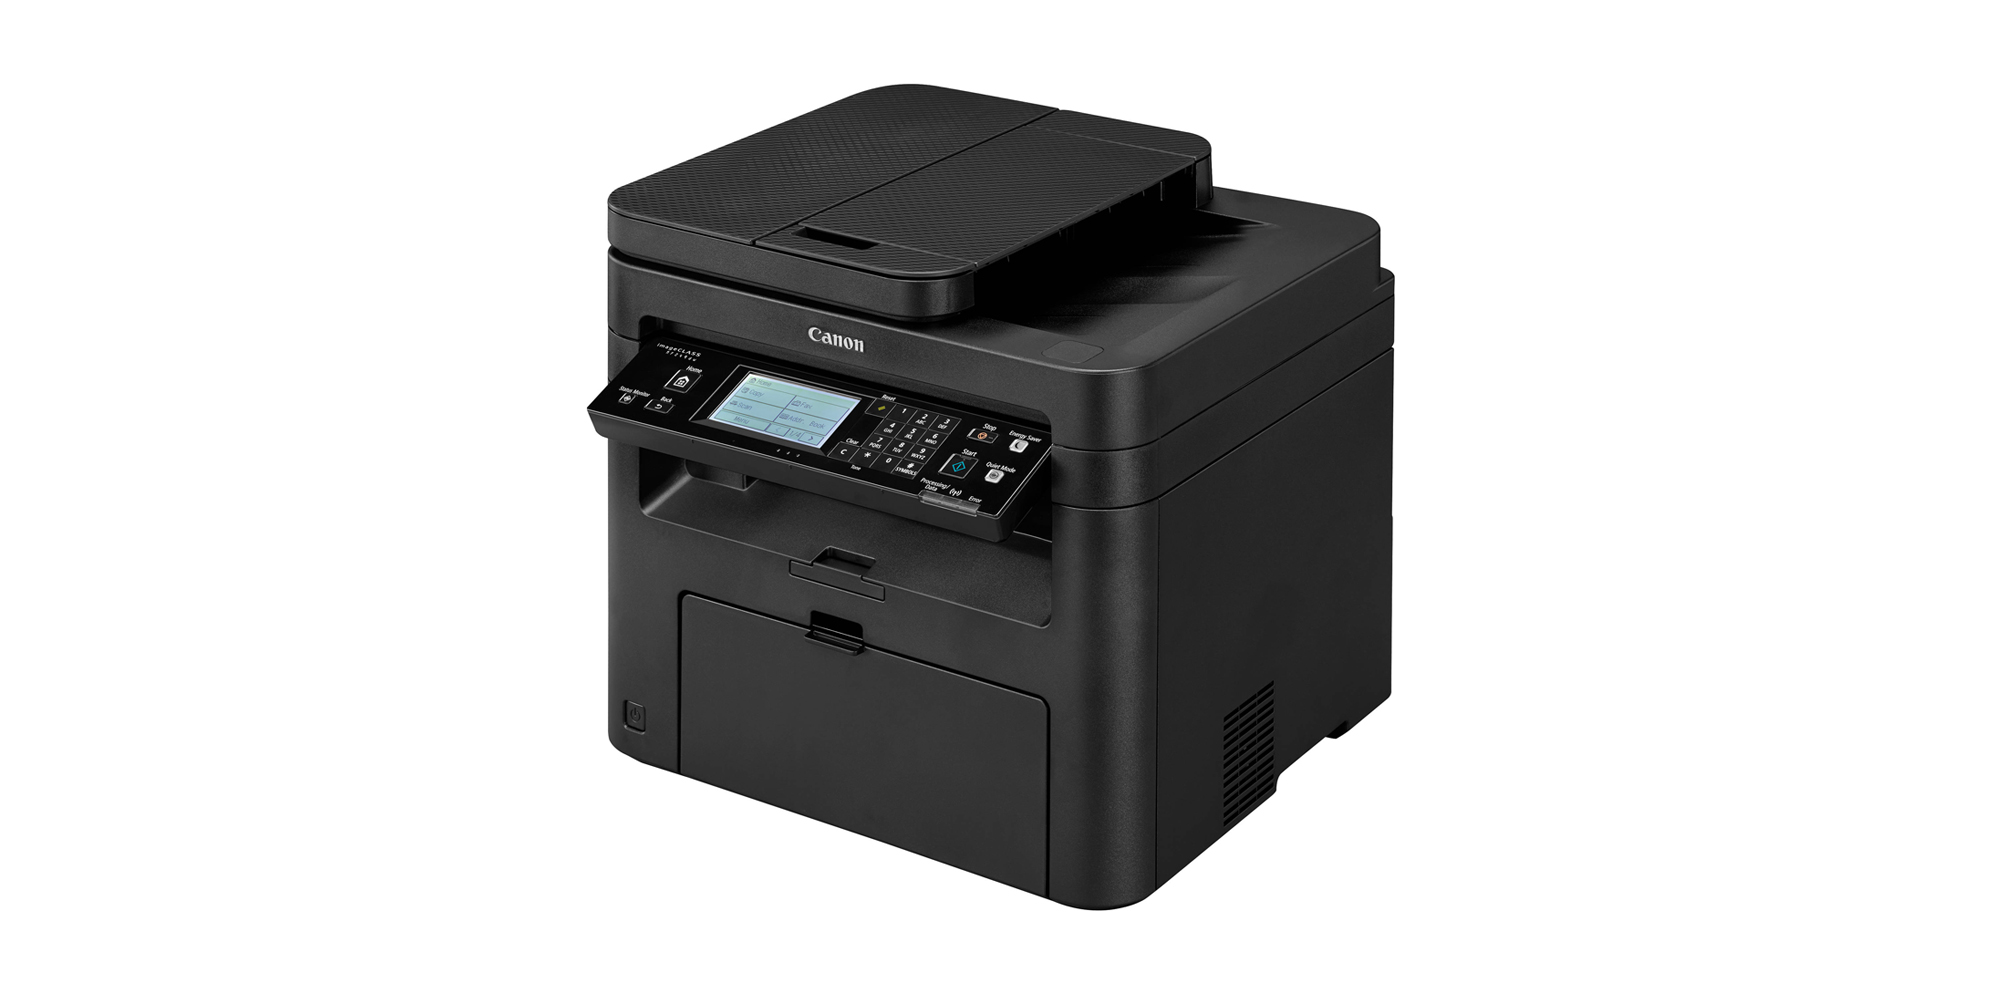 Deals for the office: Canon imageCLASS AirPrint All-in-One ...